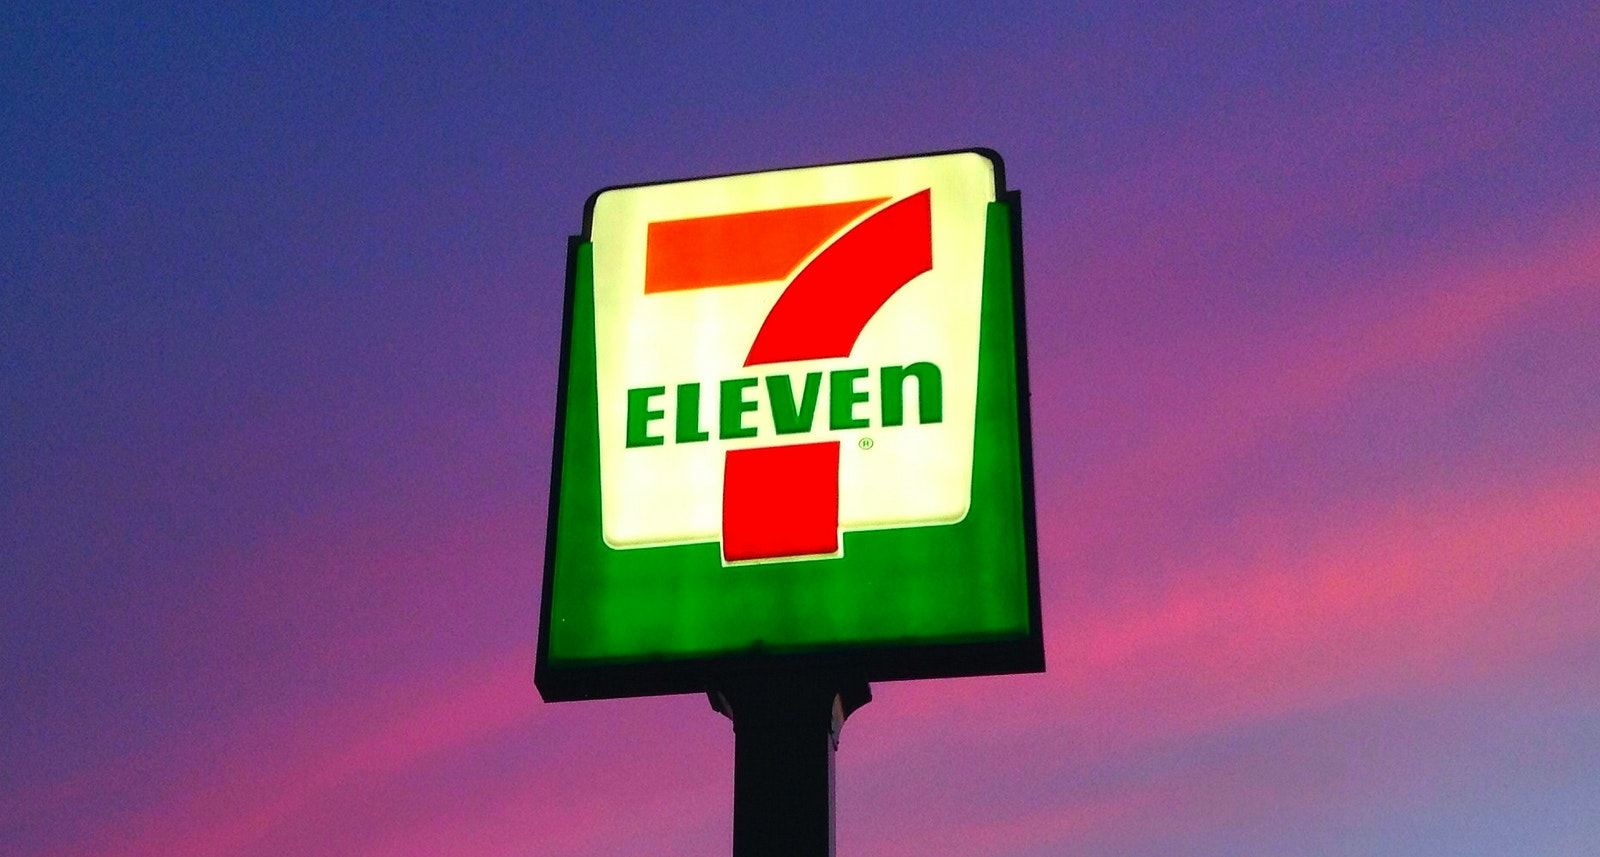 If there's so little profit, why do people buy 7-Eleven franchises?